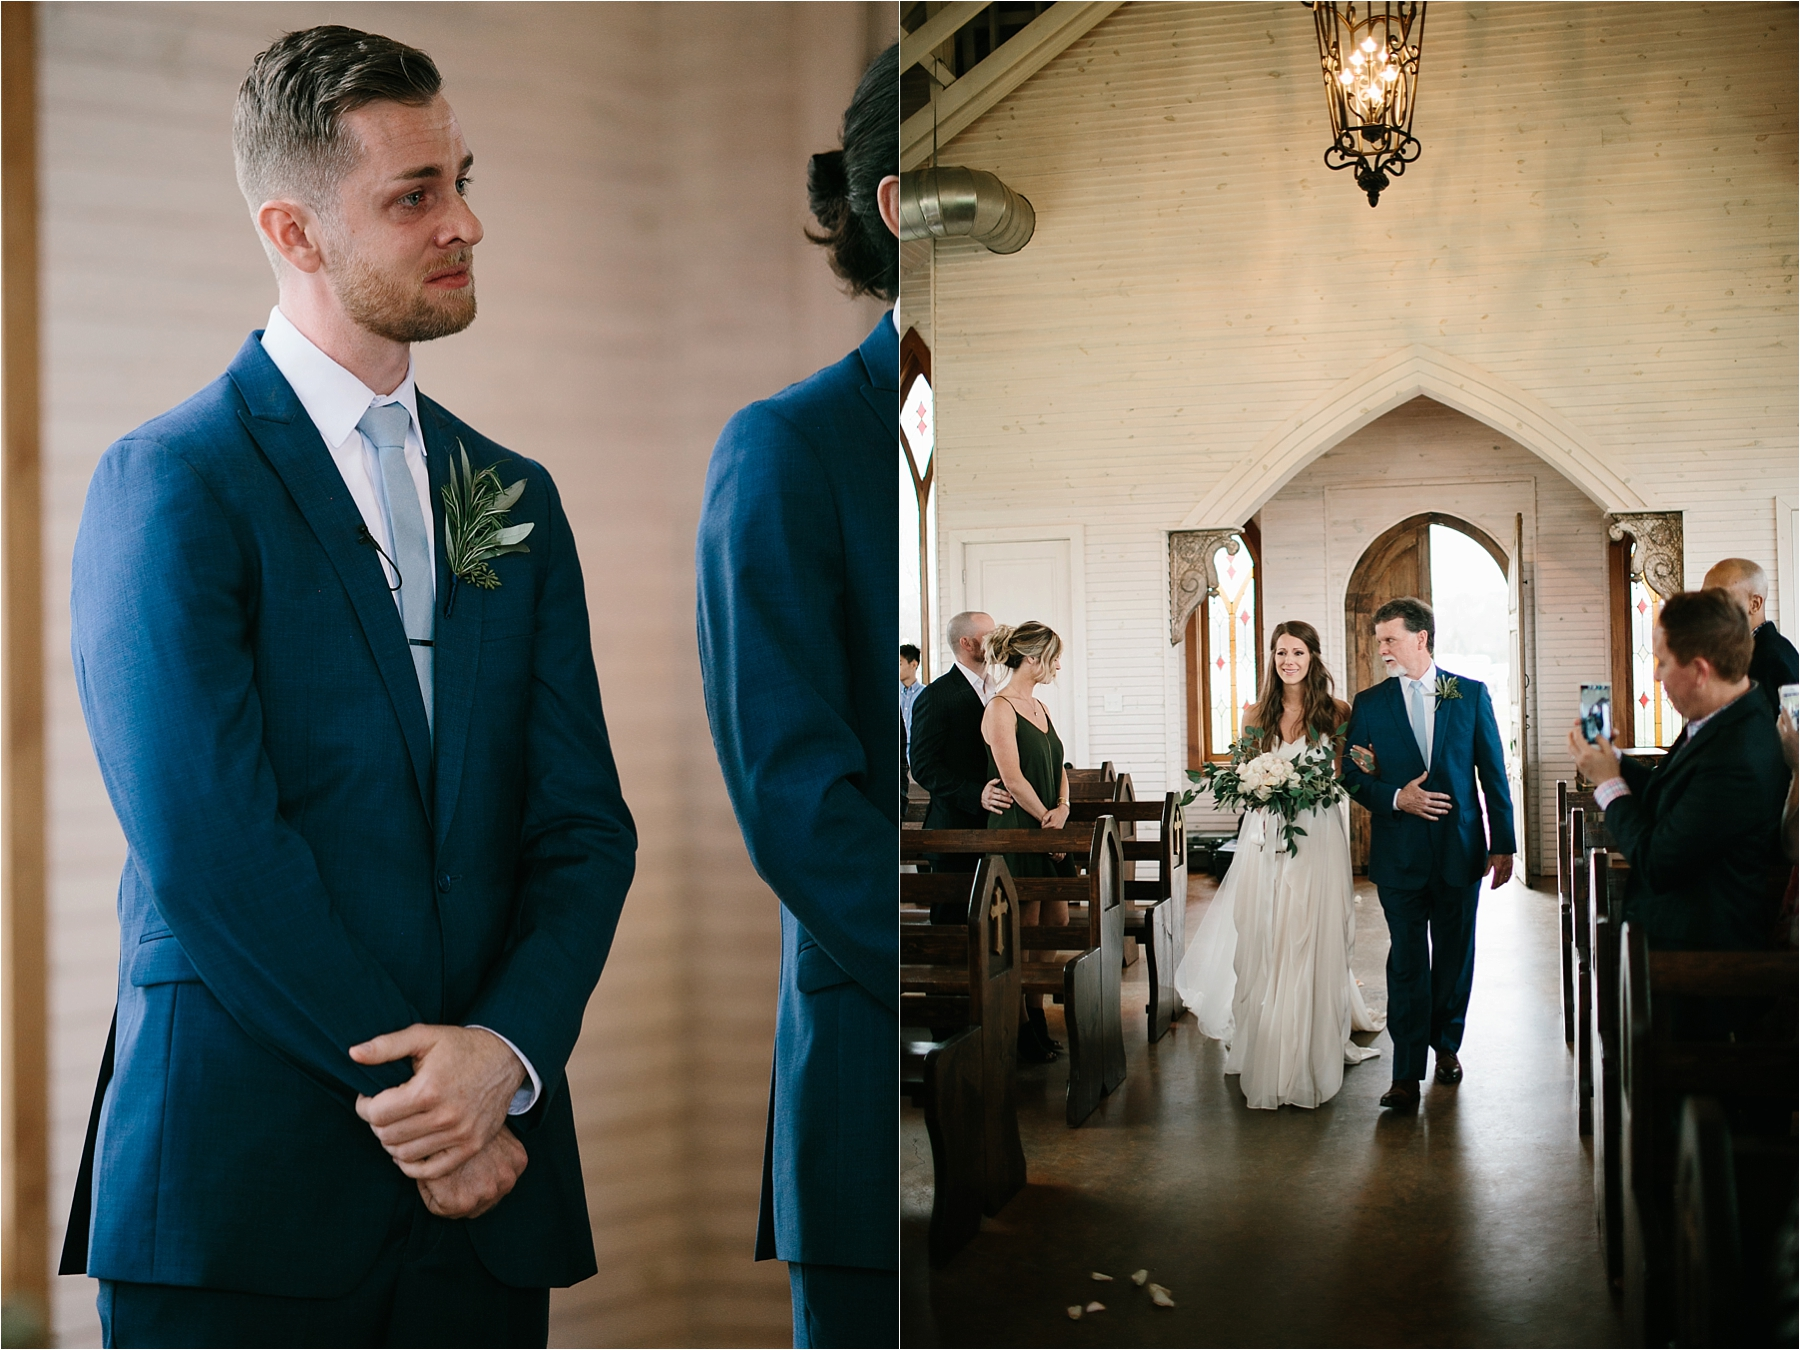 Lauren + Matt __ an intimate, emotional, blush pink, navy blue, and greenery toned wedding accents at the Brooks at Weatherford by North Texas Wedding Photographer Rachel Meagan Photography111